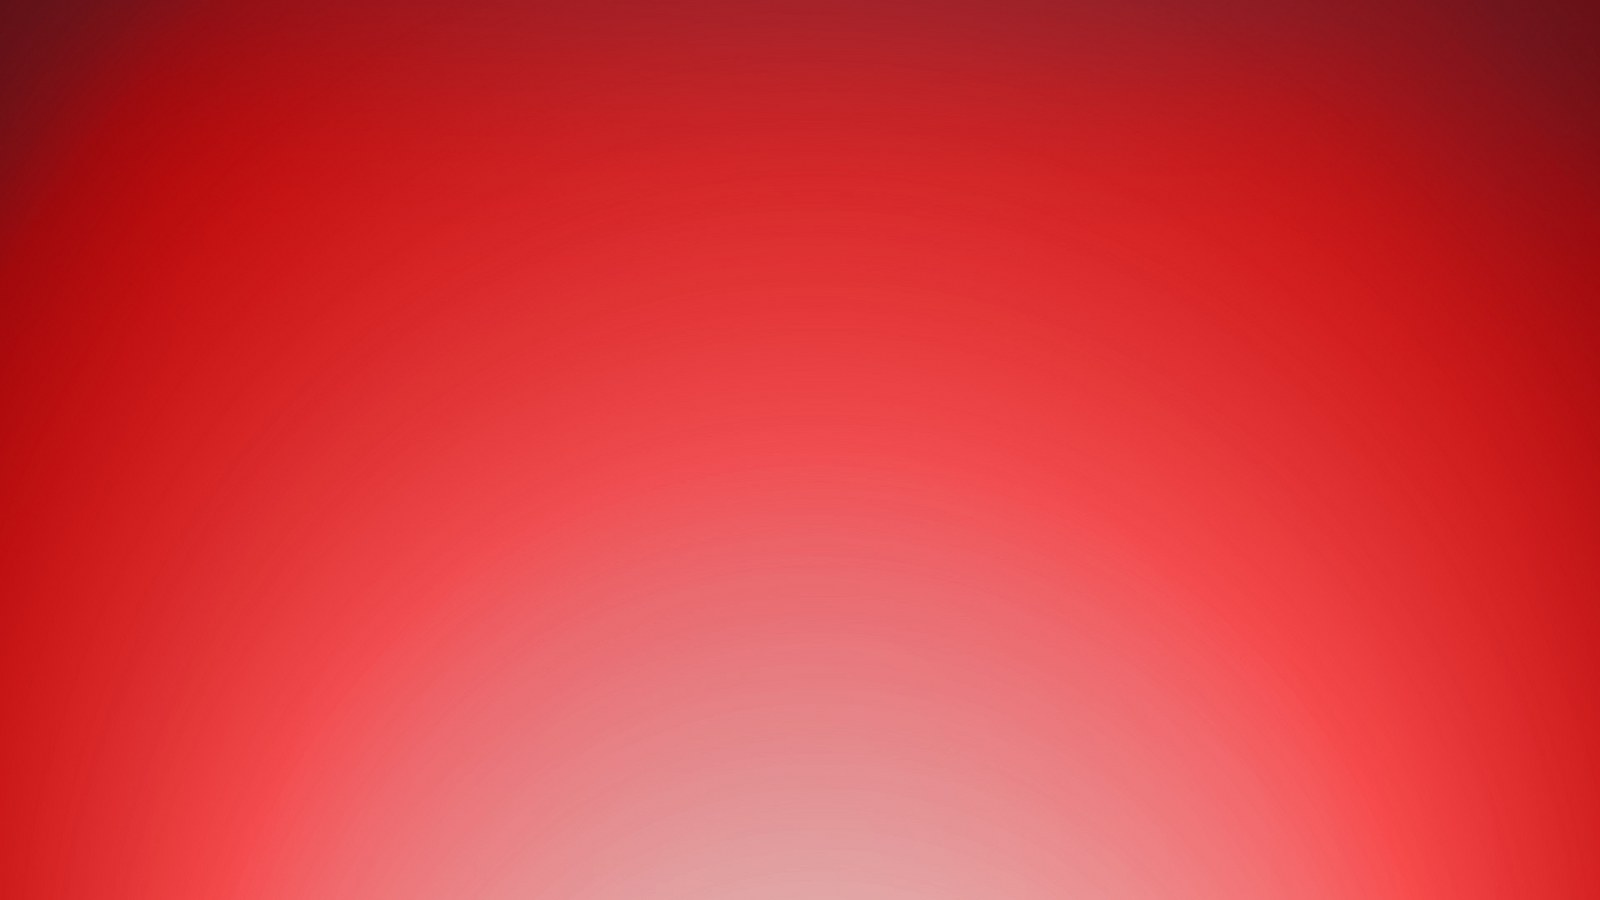 Pictures Of Red Backgrounds Wallpapersafari